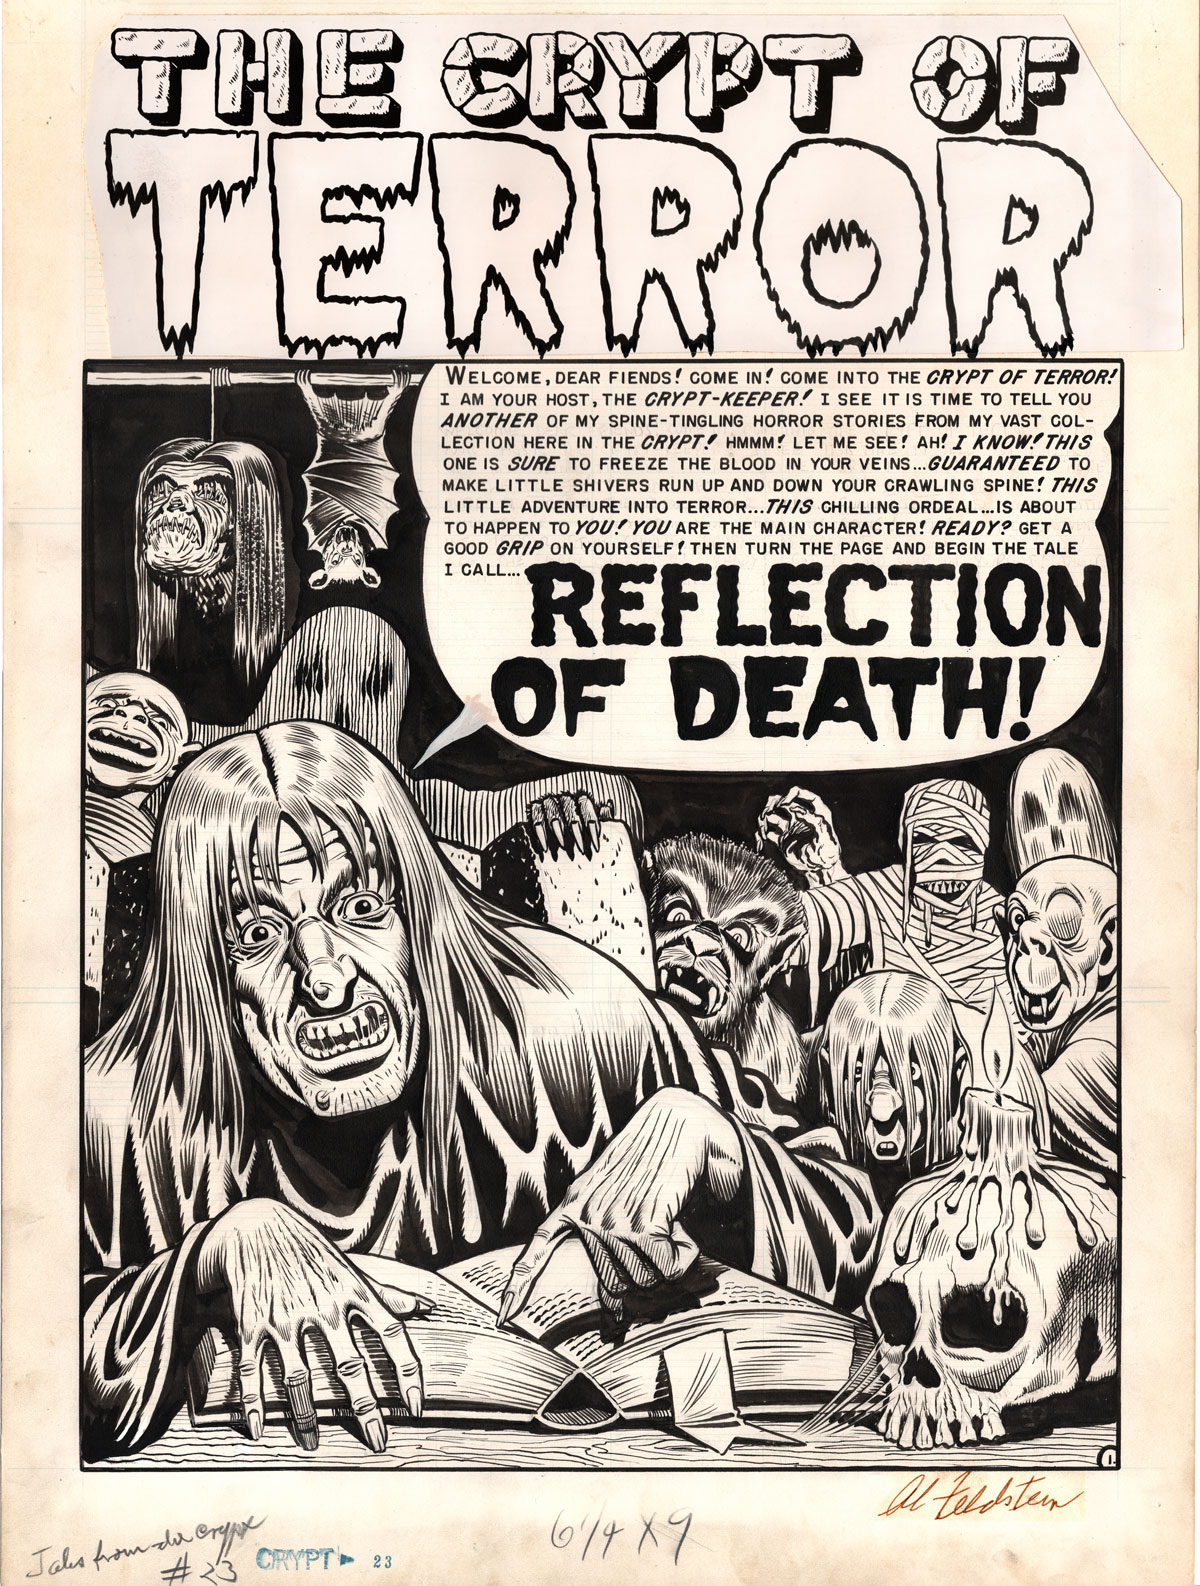 """""""Reflection of Death,"""" from  Tales from the Crypt  #23 (April/May 1951), written and drawn by   Al Feldstein. Images are property of William M Gaines Agent, Inc. © 2019."""